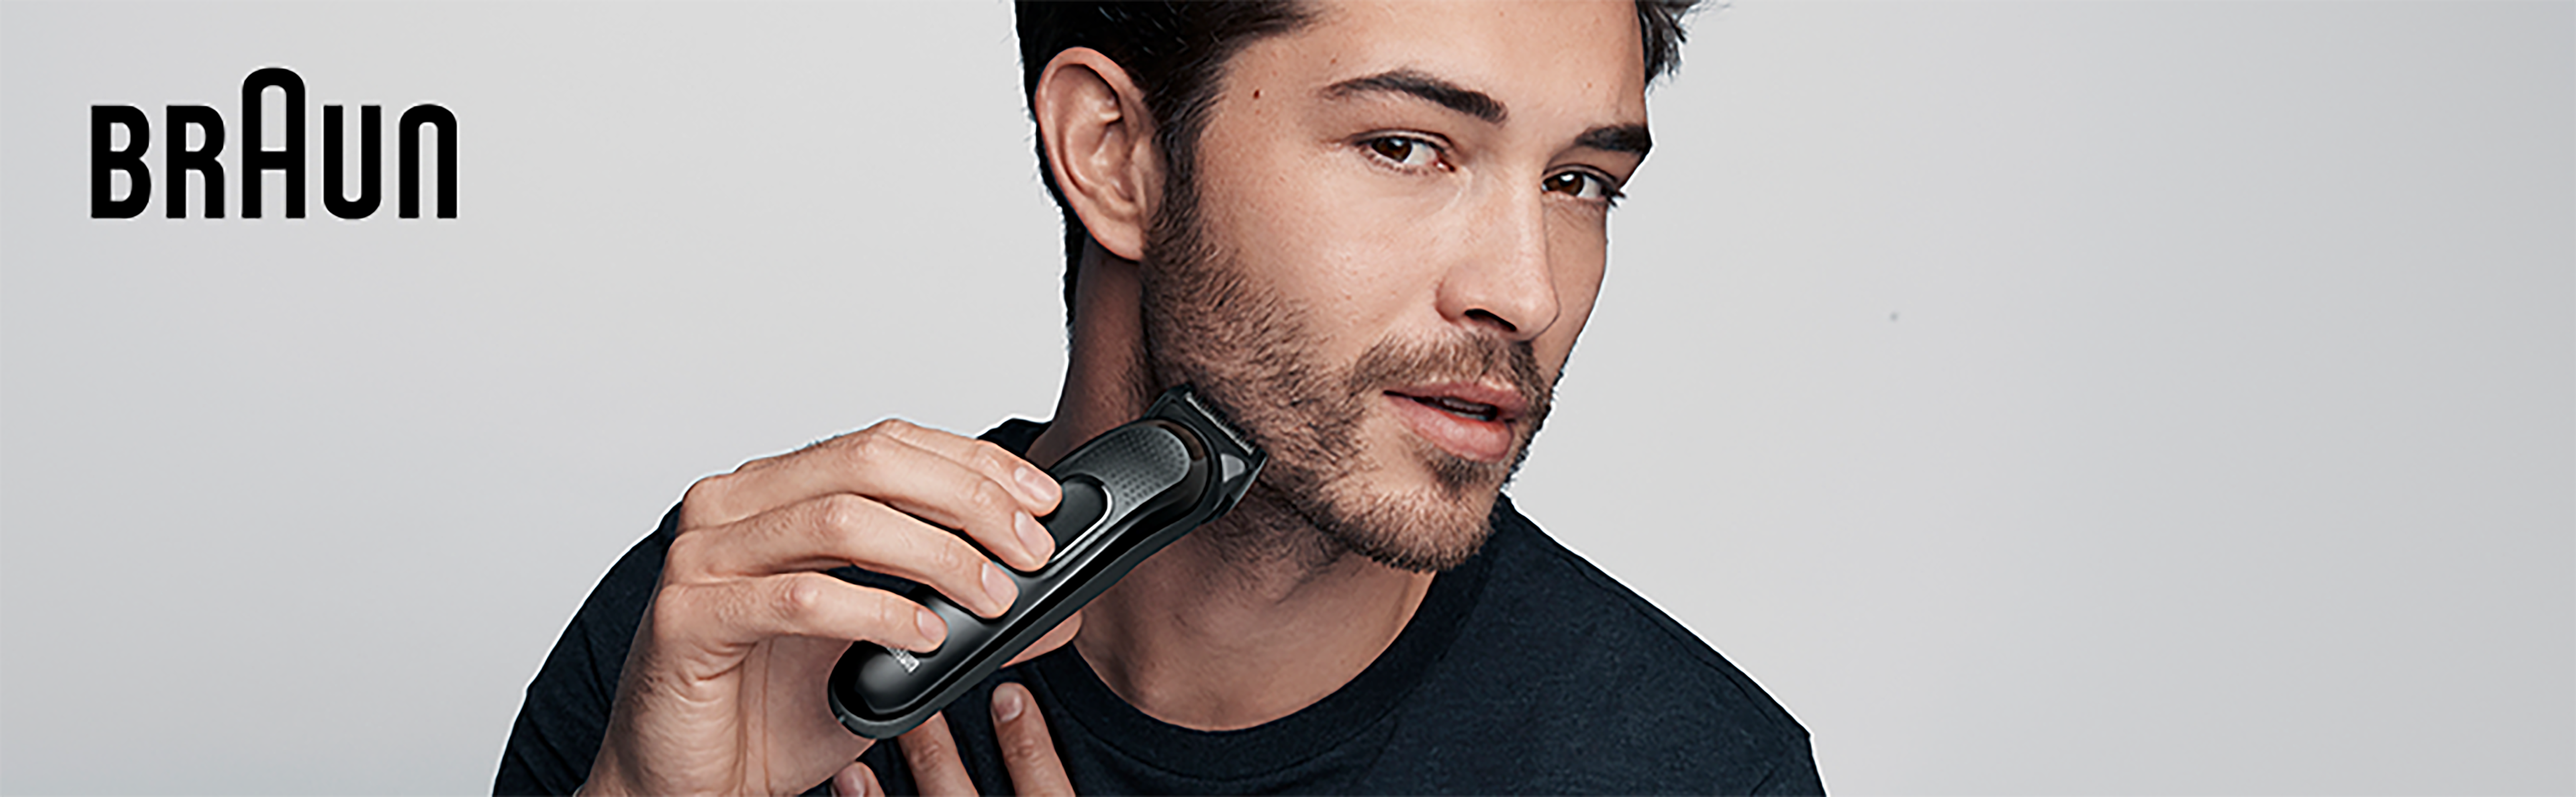 Braun 6-in-1 All-in-one Trimmer 3 MGK3220